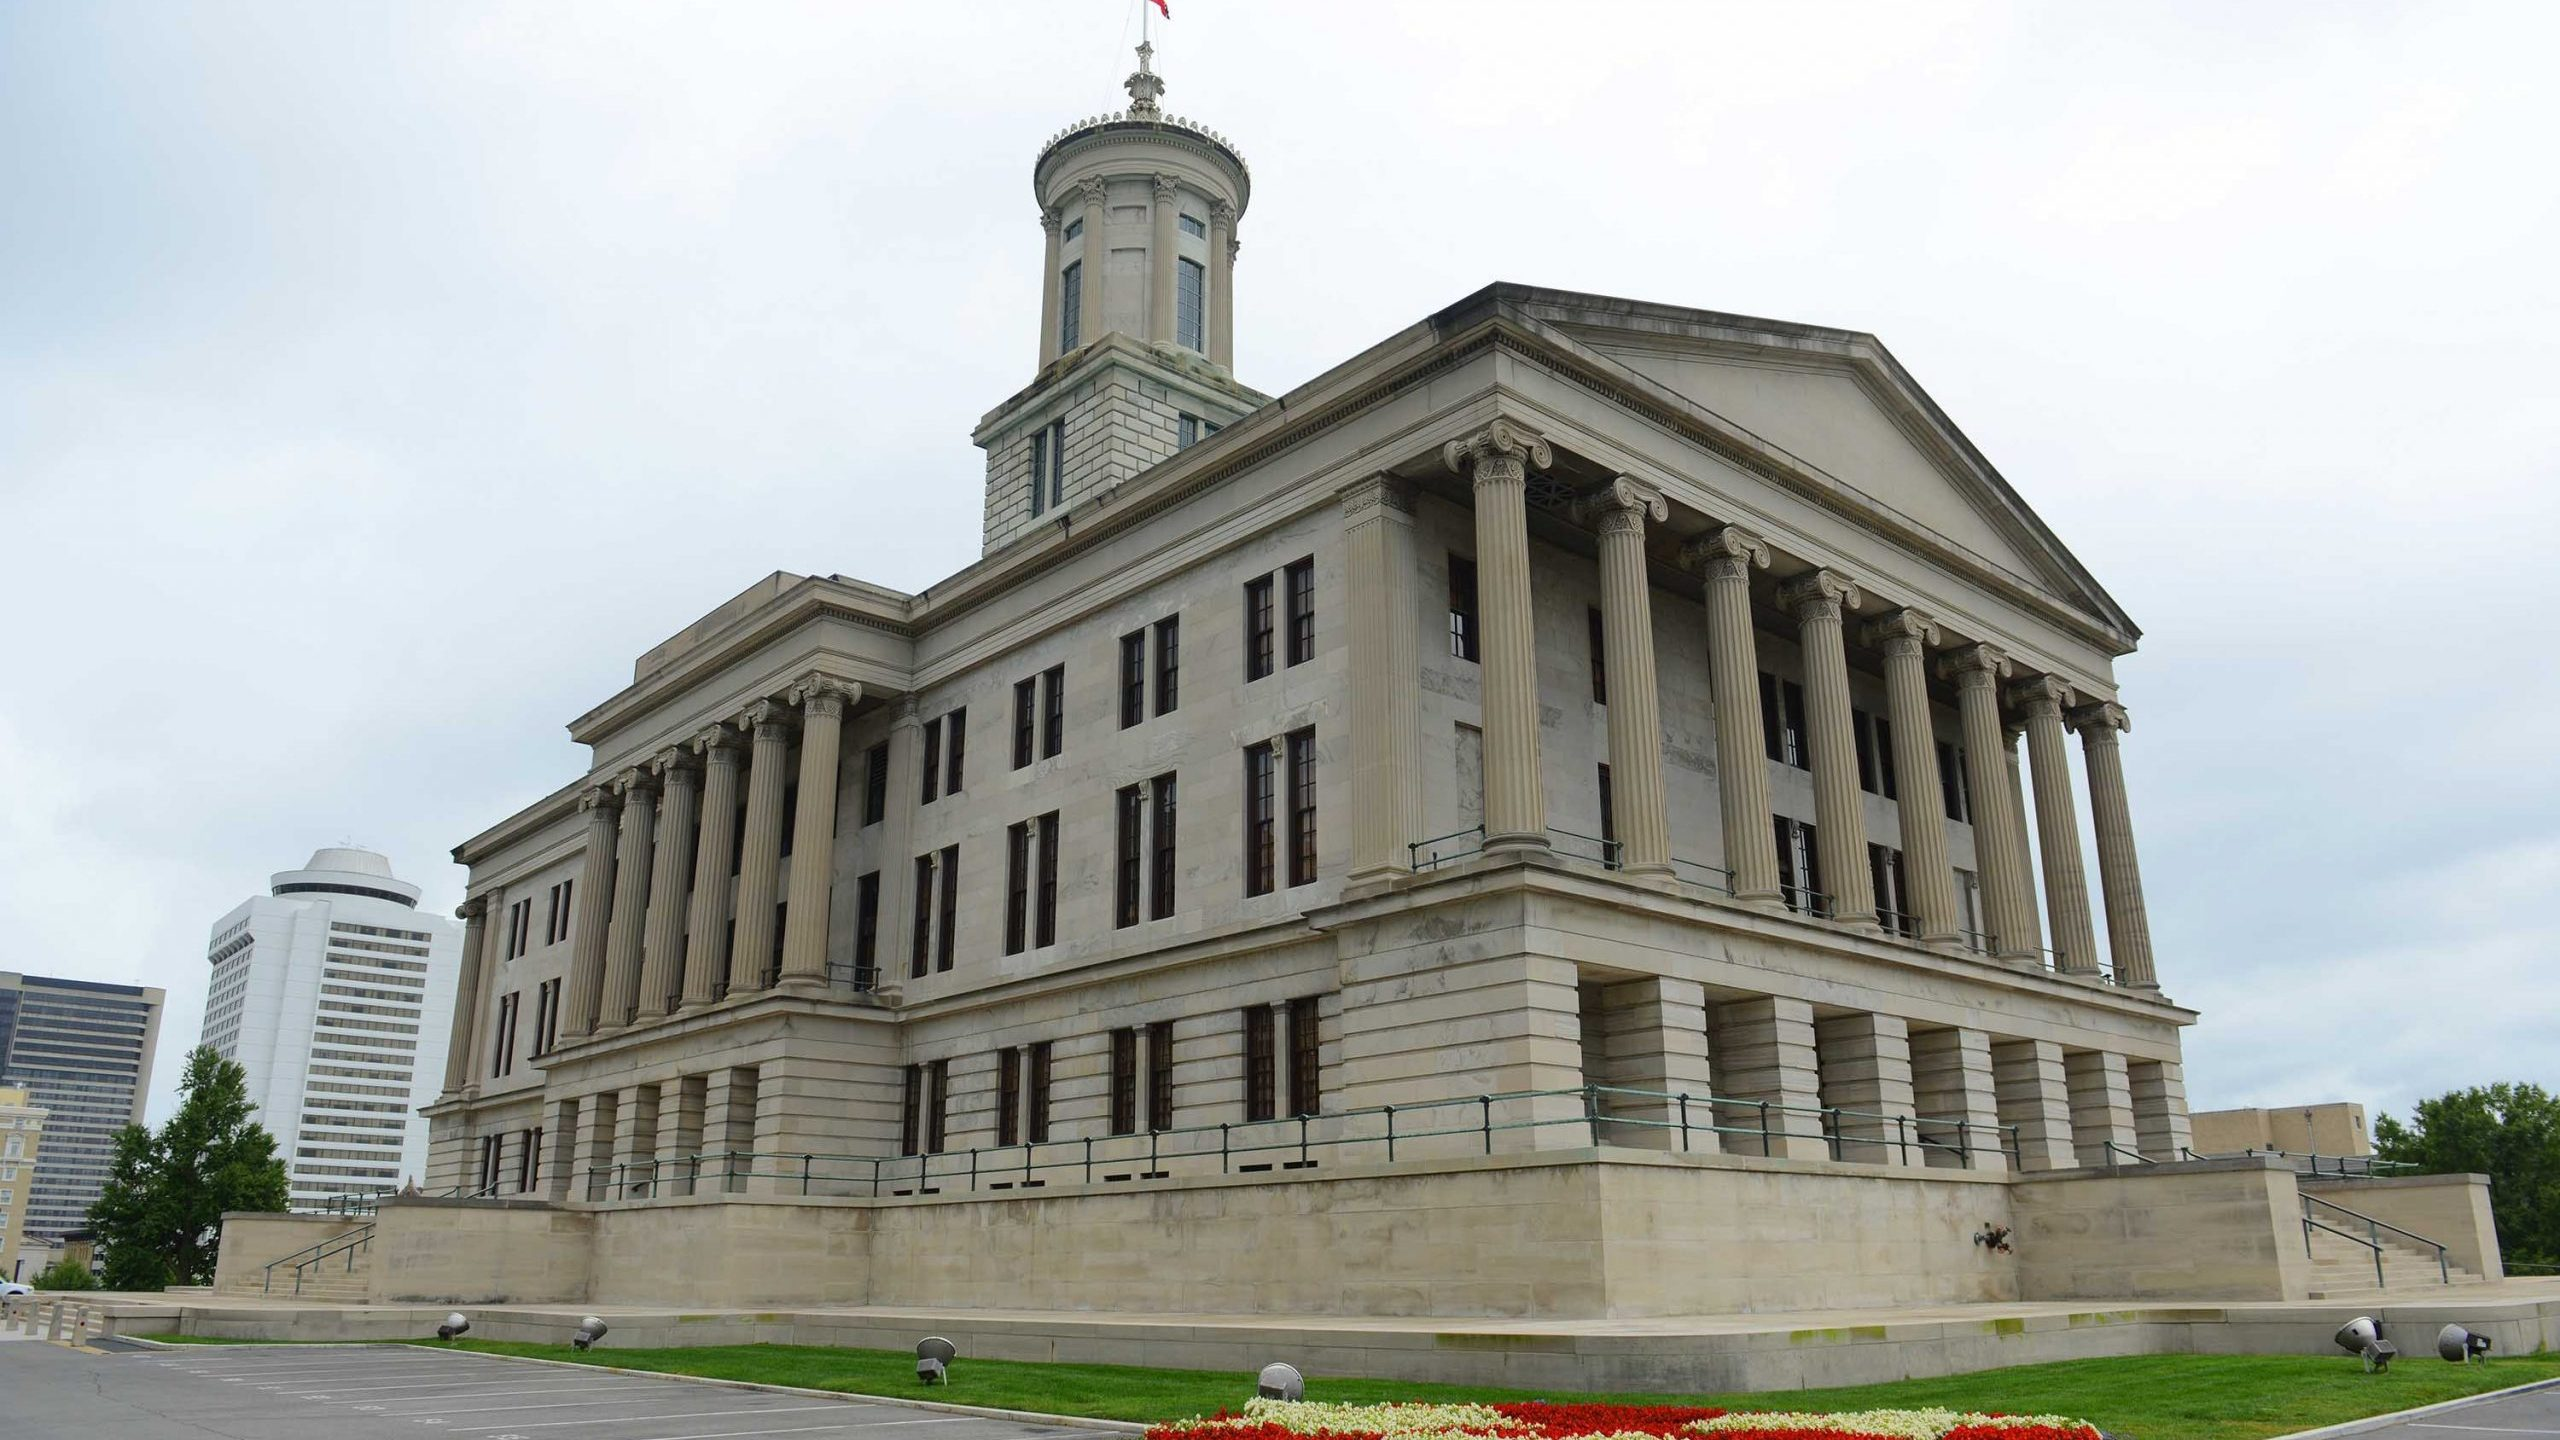 The Tennessee State Capitol is seen in a file photo. (Credit: Shutterstock via CNN)